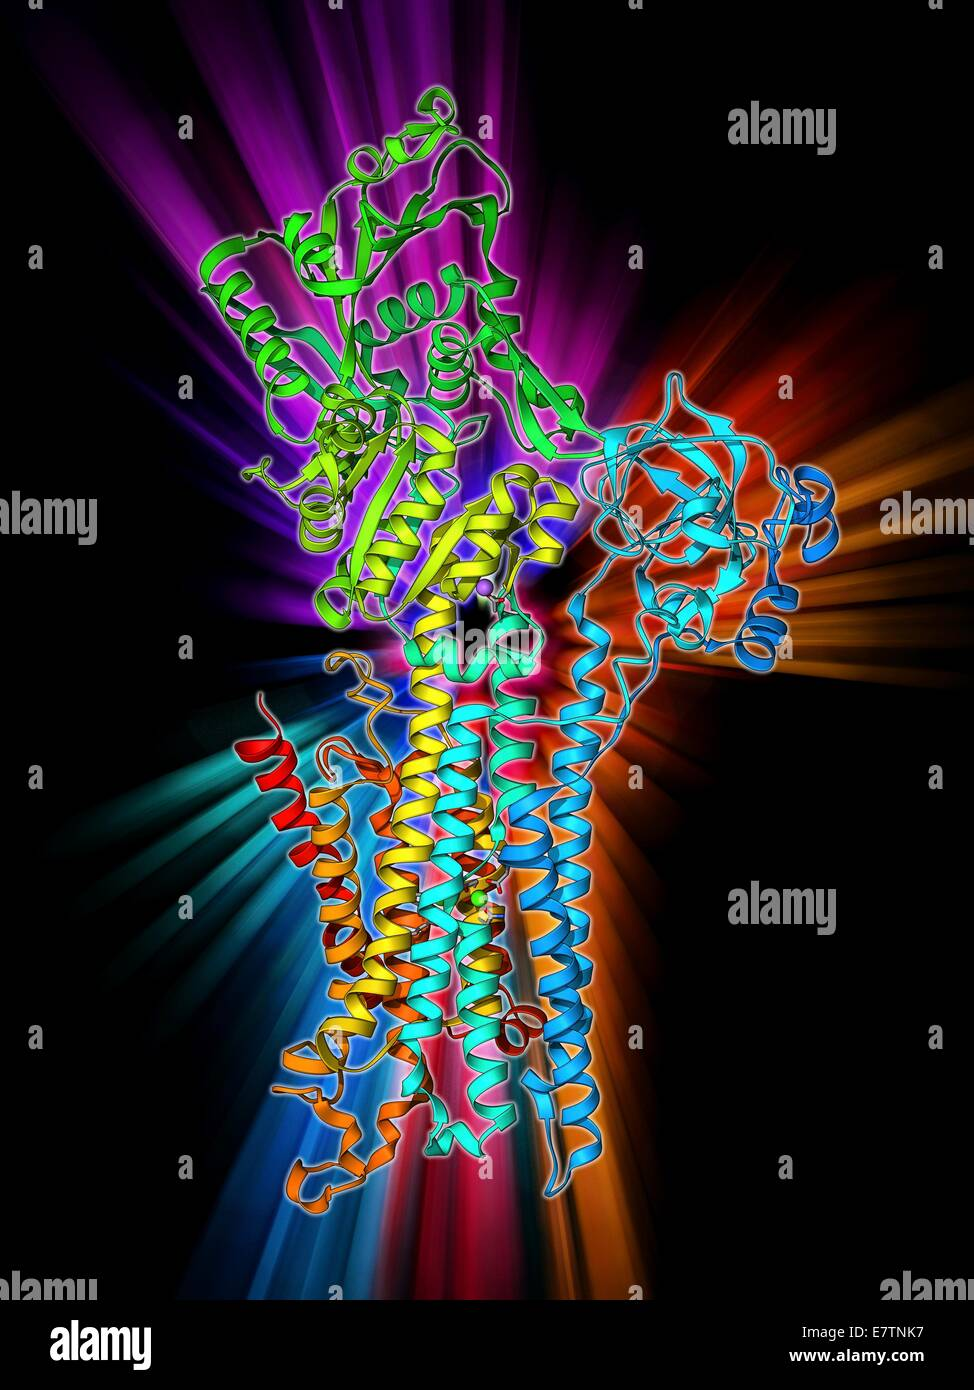 Calcium Atpase Ion Pump Molecular Model This Enzyme Is Found In